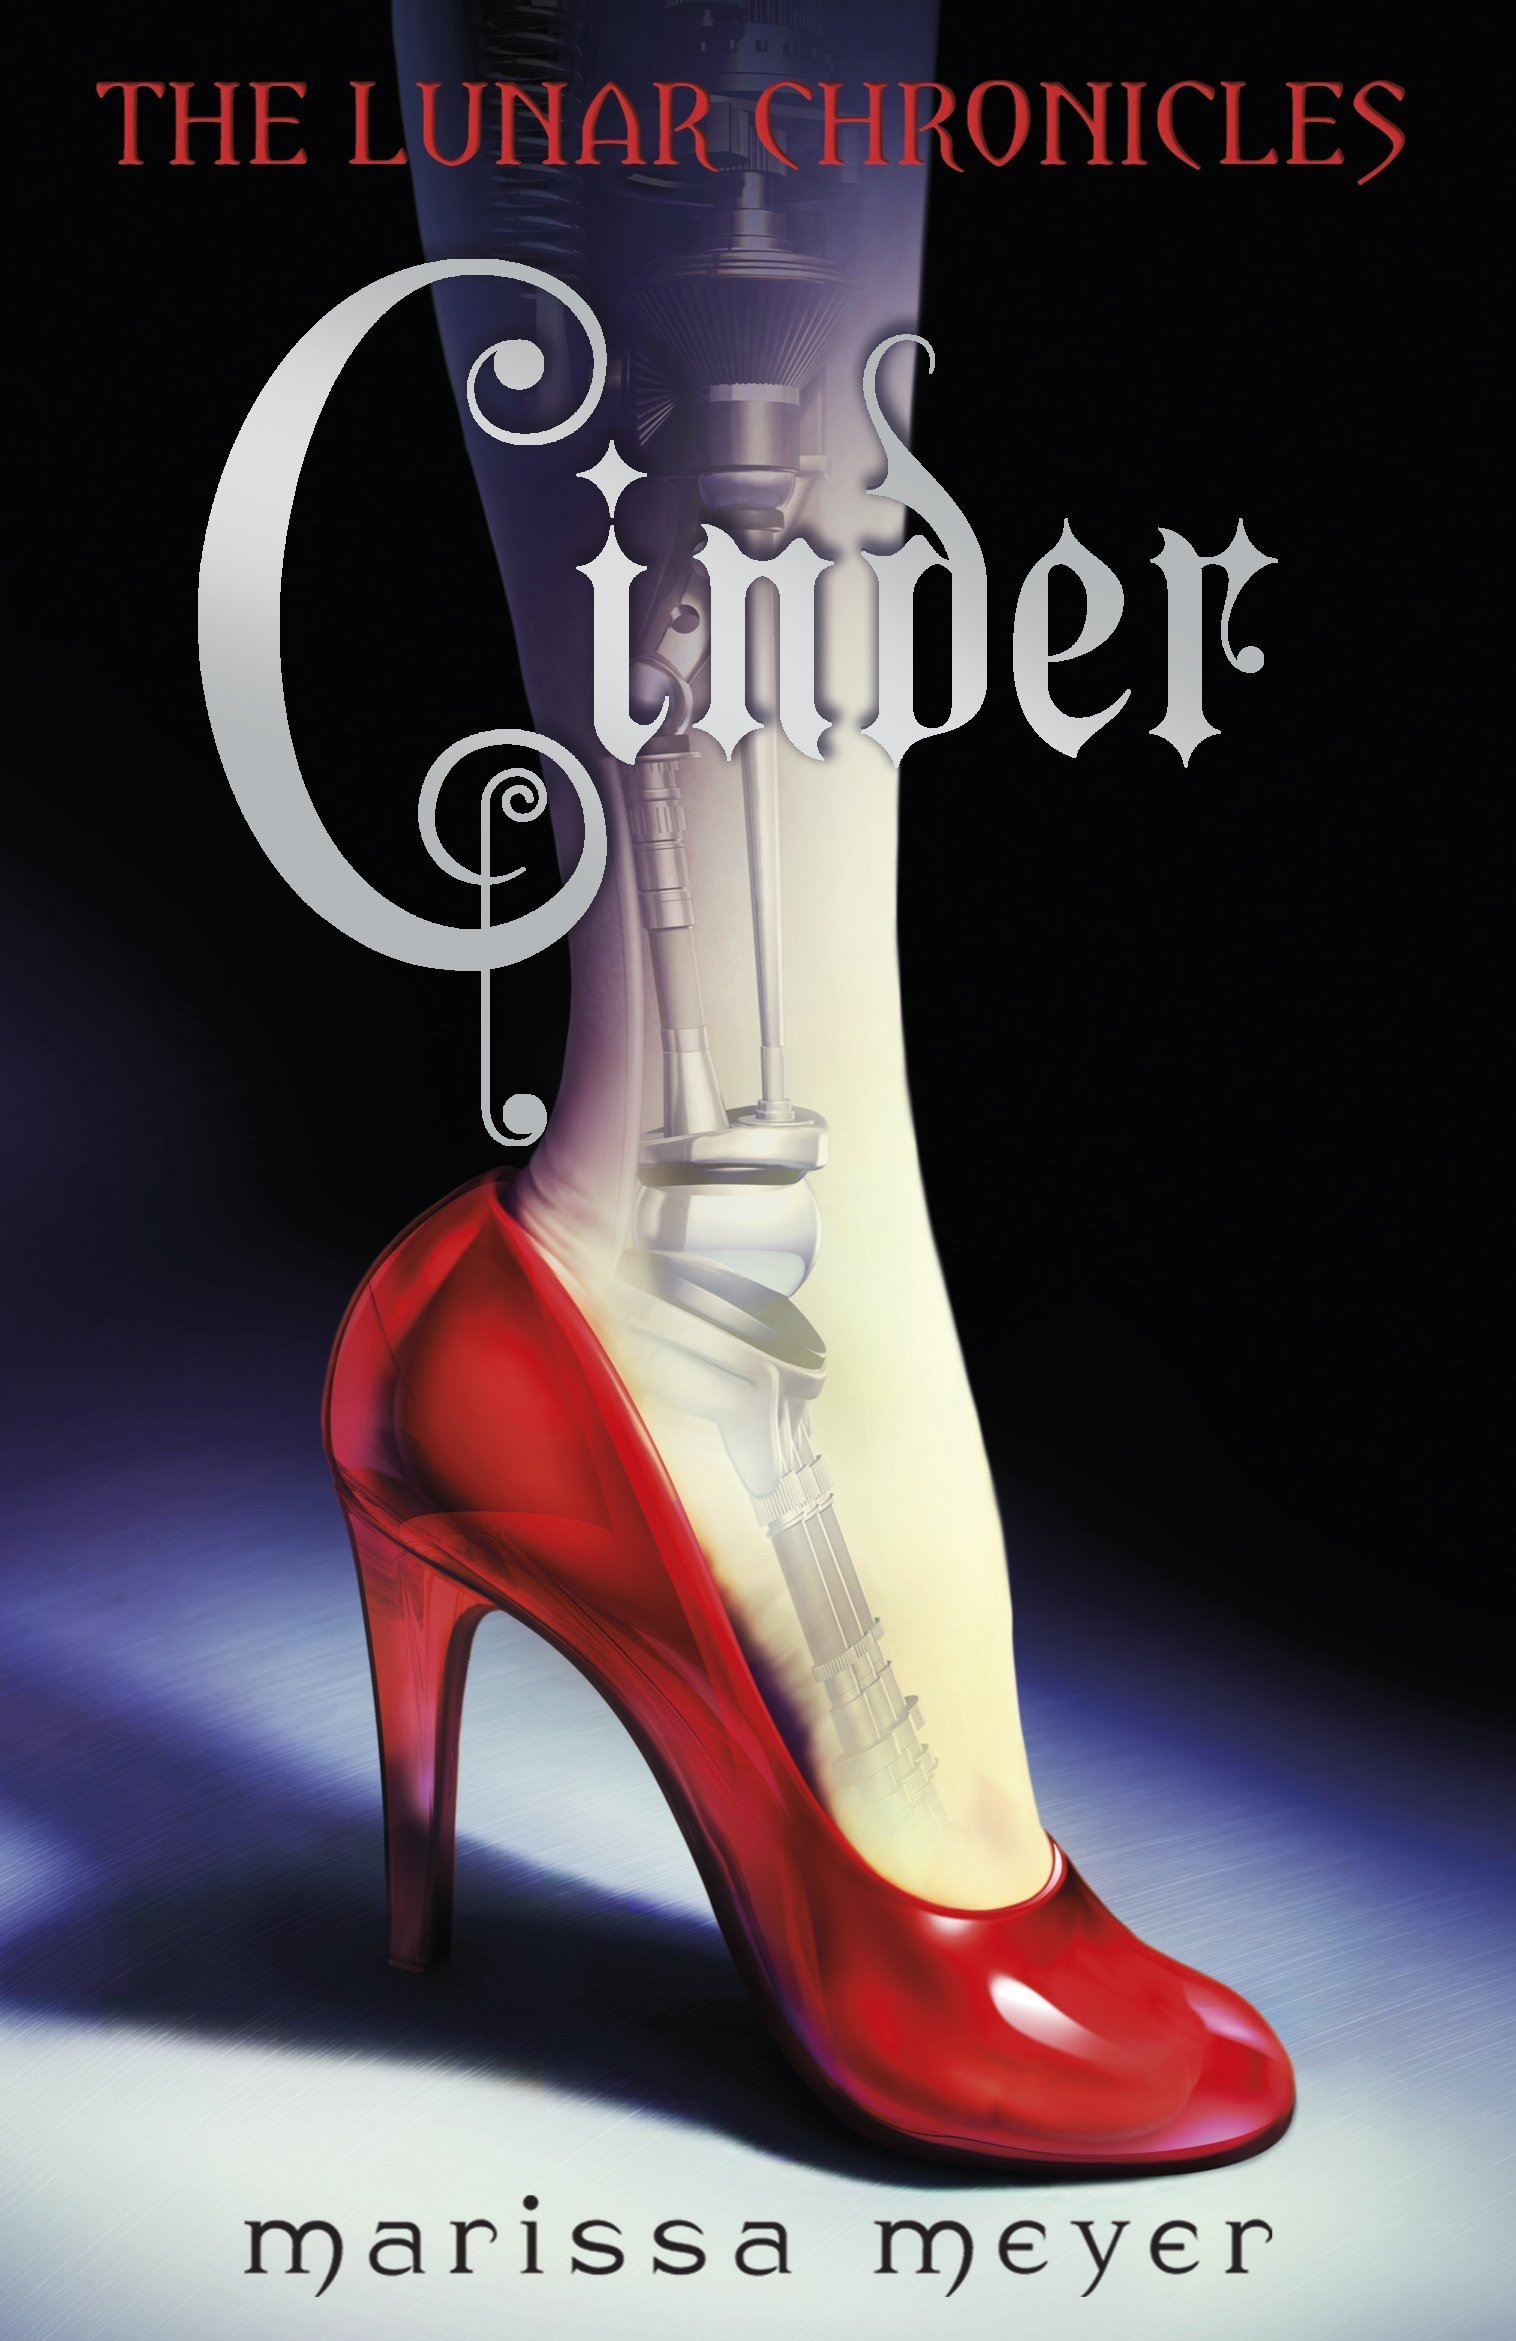 https://ploufquilit.blogspot.com/2016/02/the-lunar-chronicles-1-cinder-marissa.html